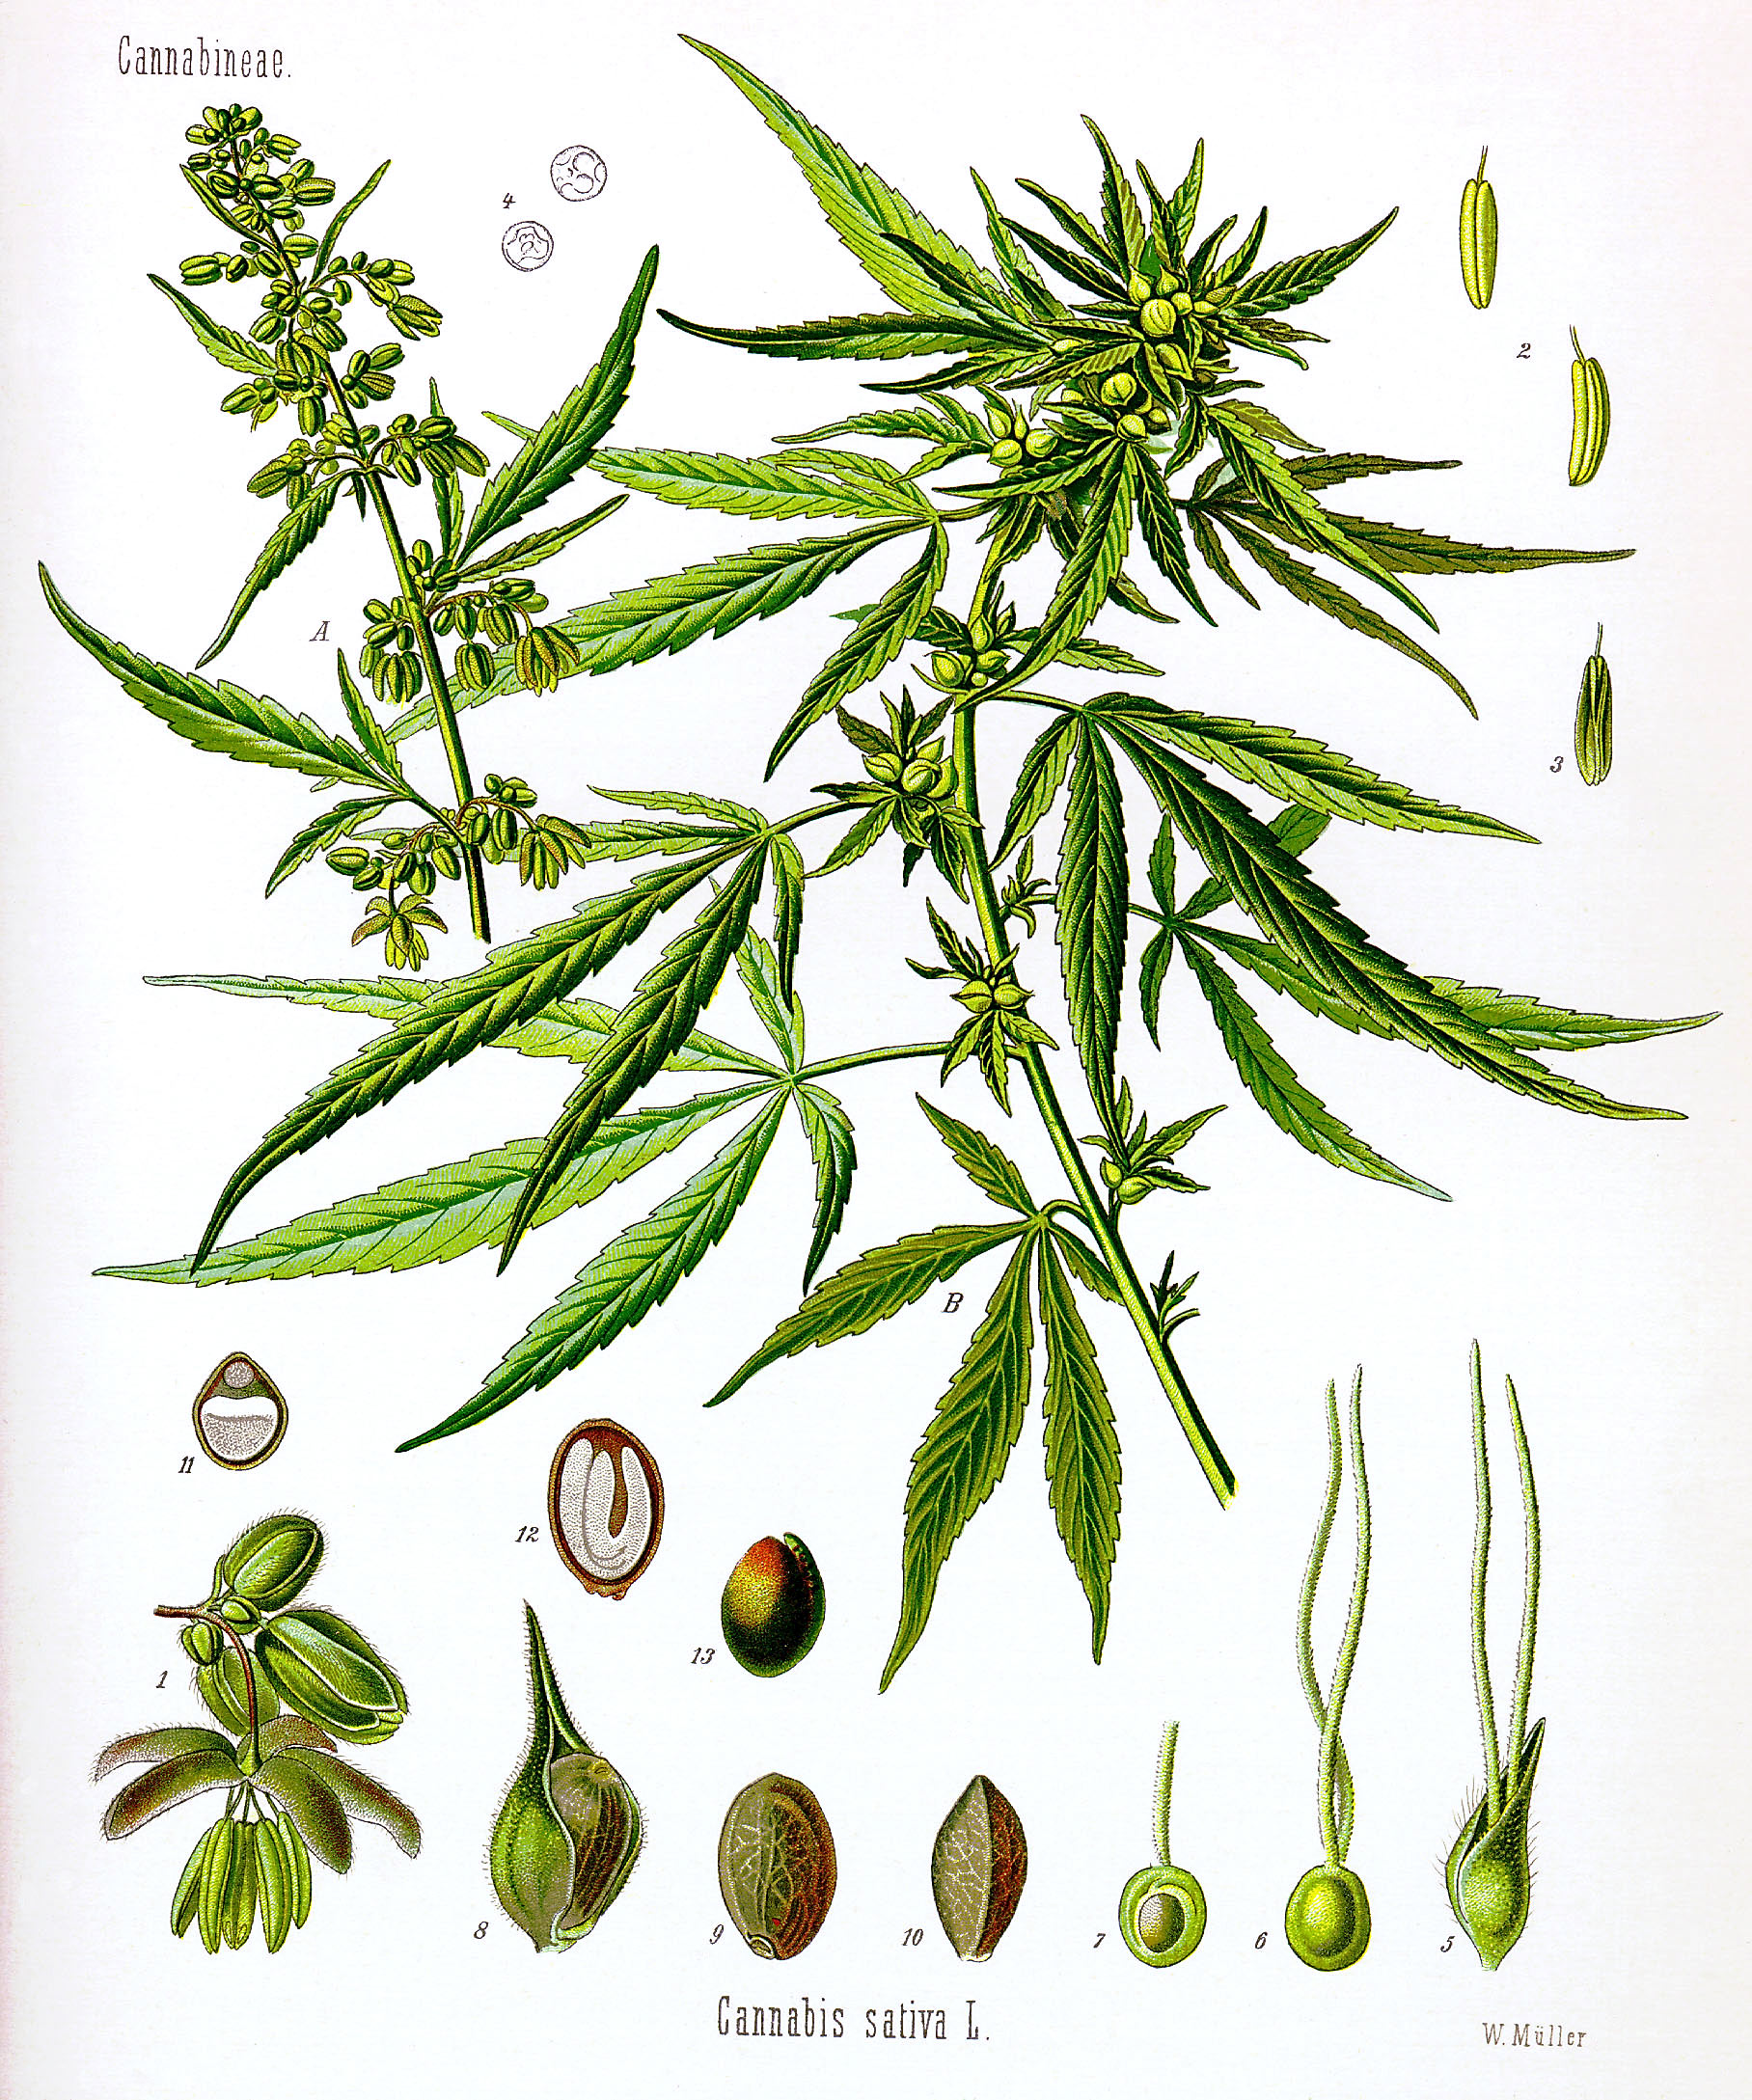 File:Cannabis sativa Koehler drawing.jpg - Wikipedia, the free ...